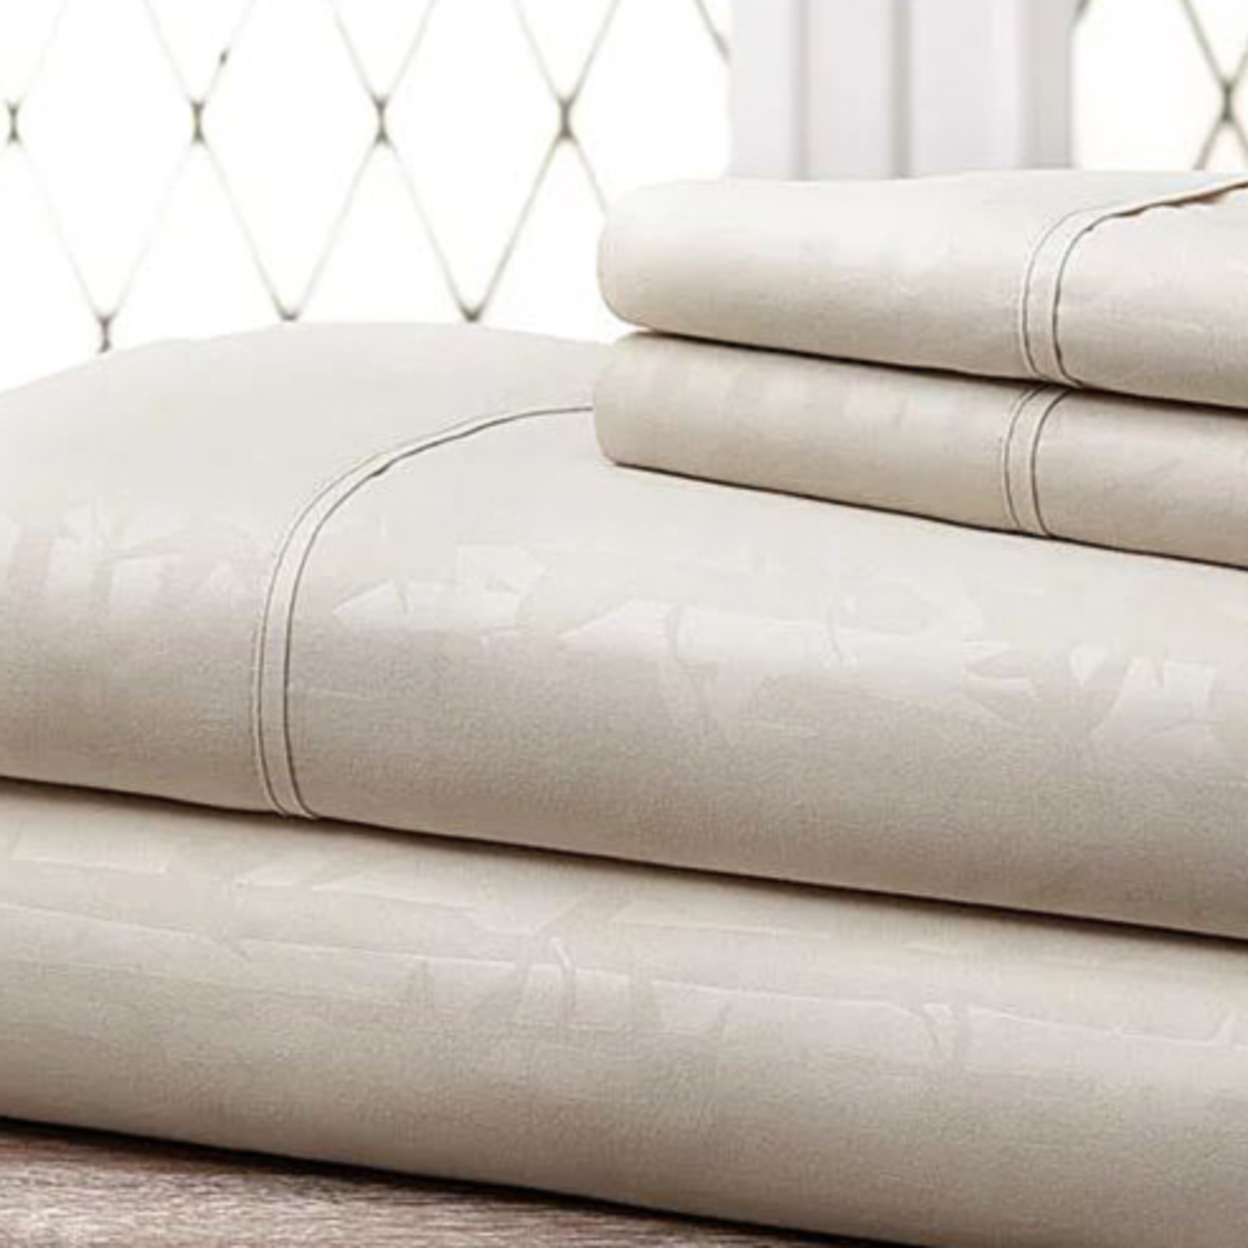 4-Piece Set: Super-Soft 1600 Series Bamboo Embossed Bed Sheet- 12 Colors - Bone, Full 57169db74e3d6f31448b4717